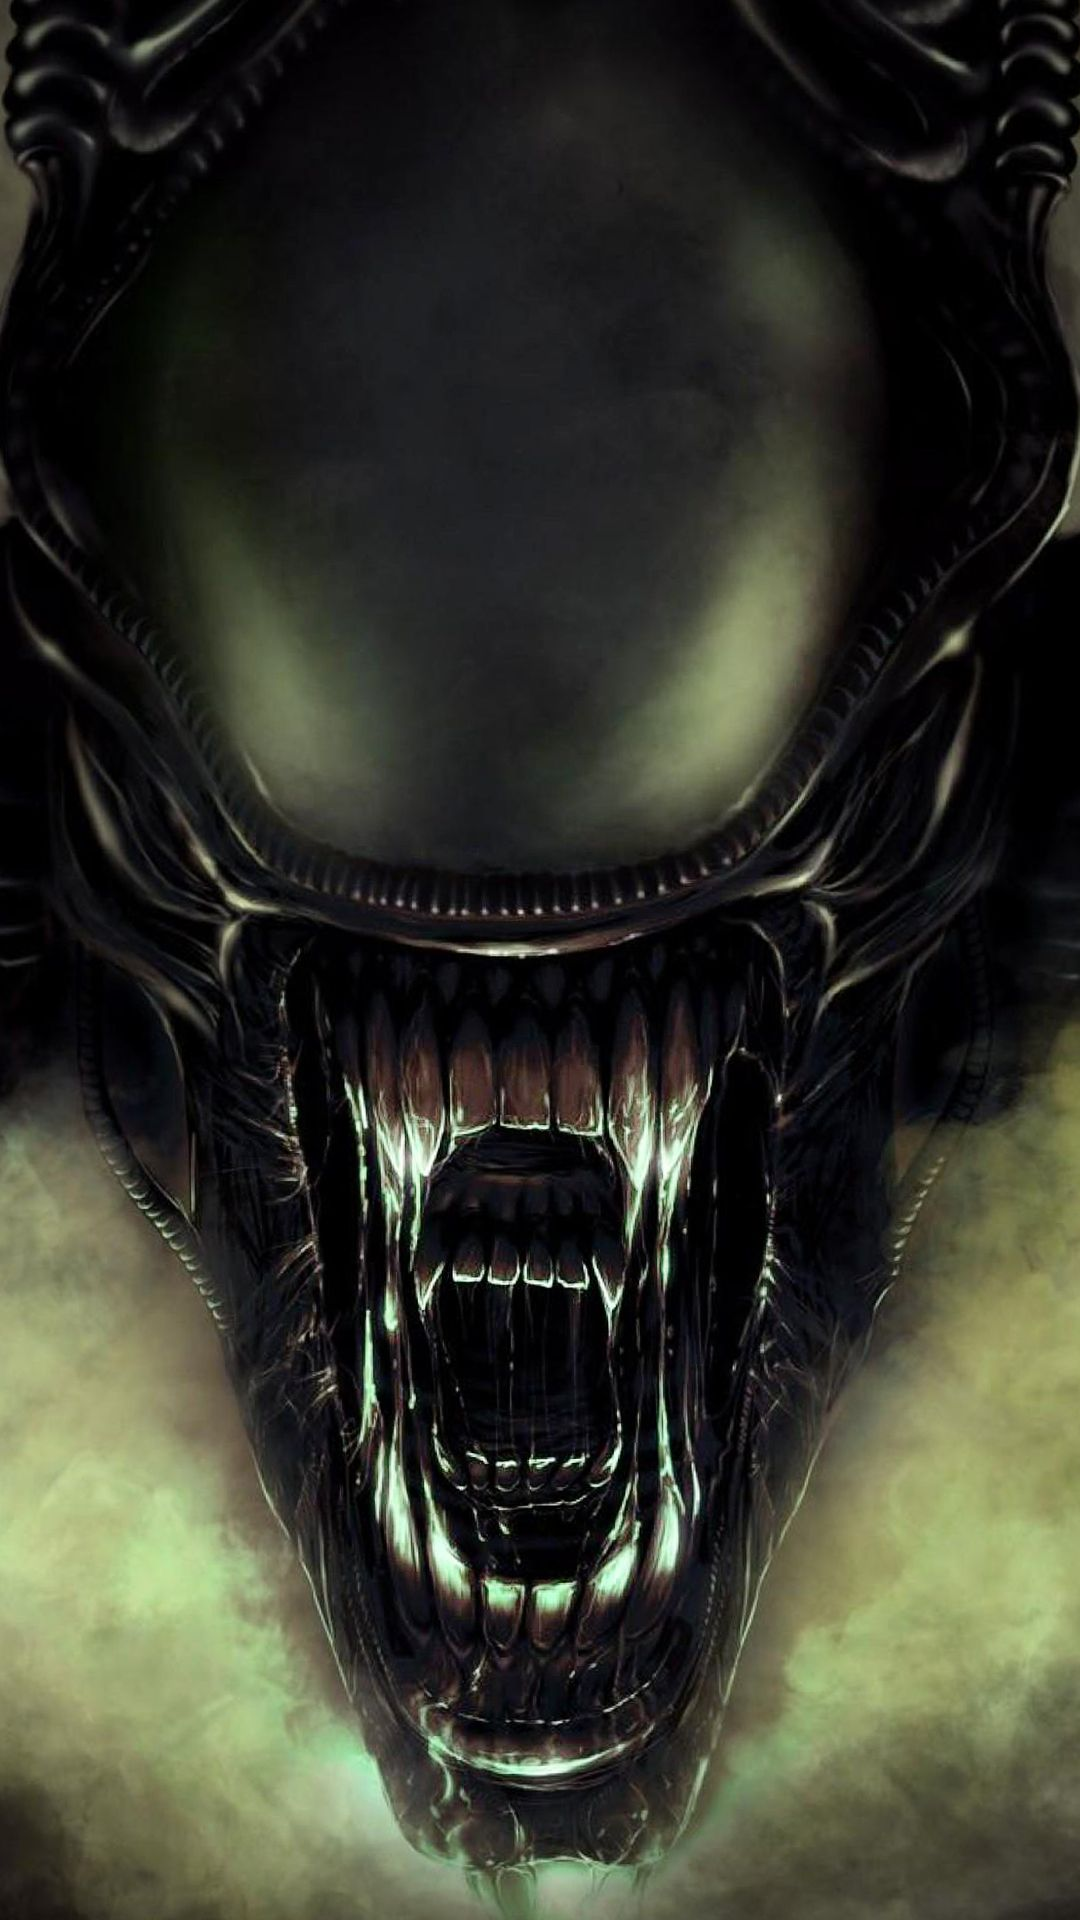 5 Awesome Alien Wallpapers For Your Android or Iphone